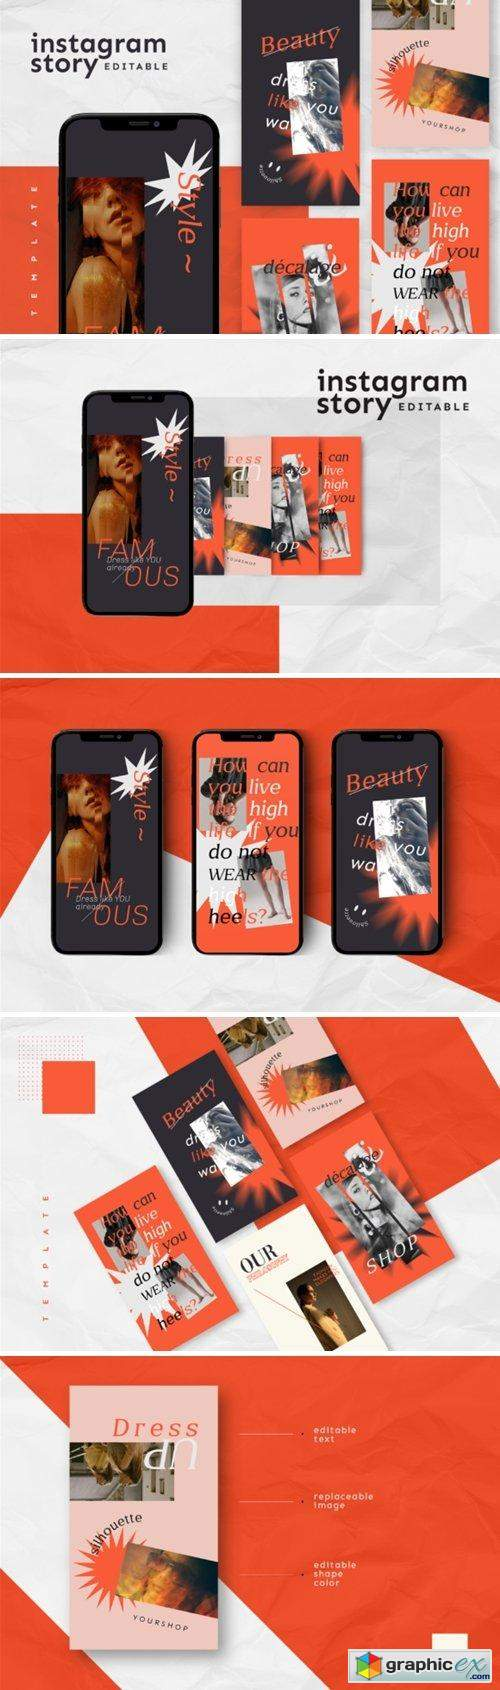 Instagram Story Template 2893177